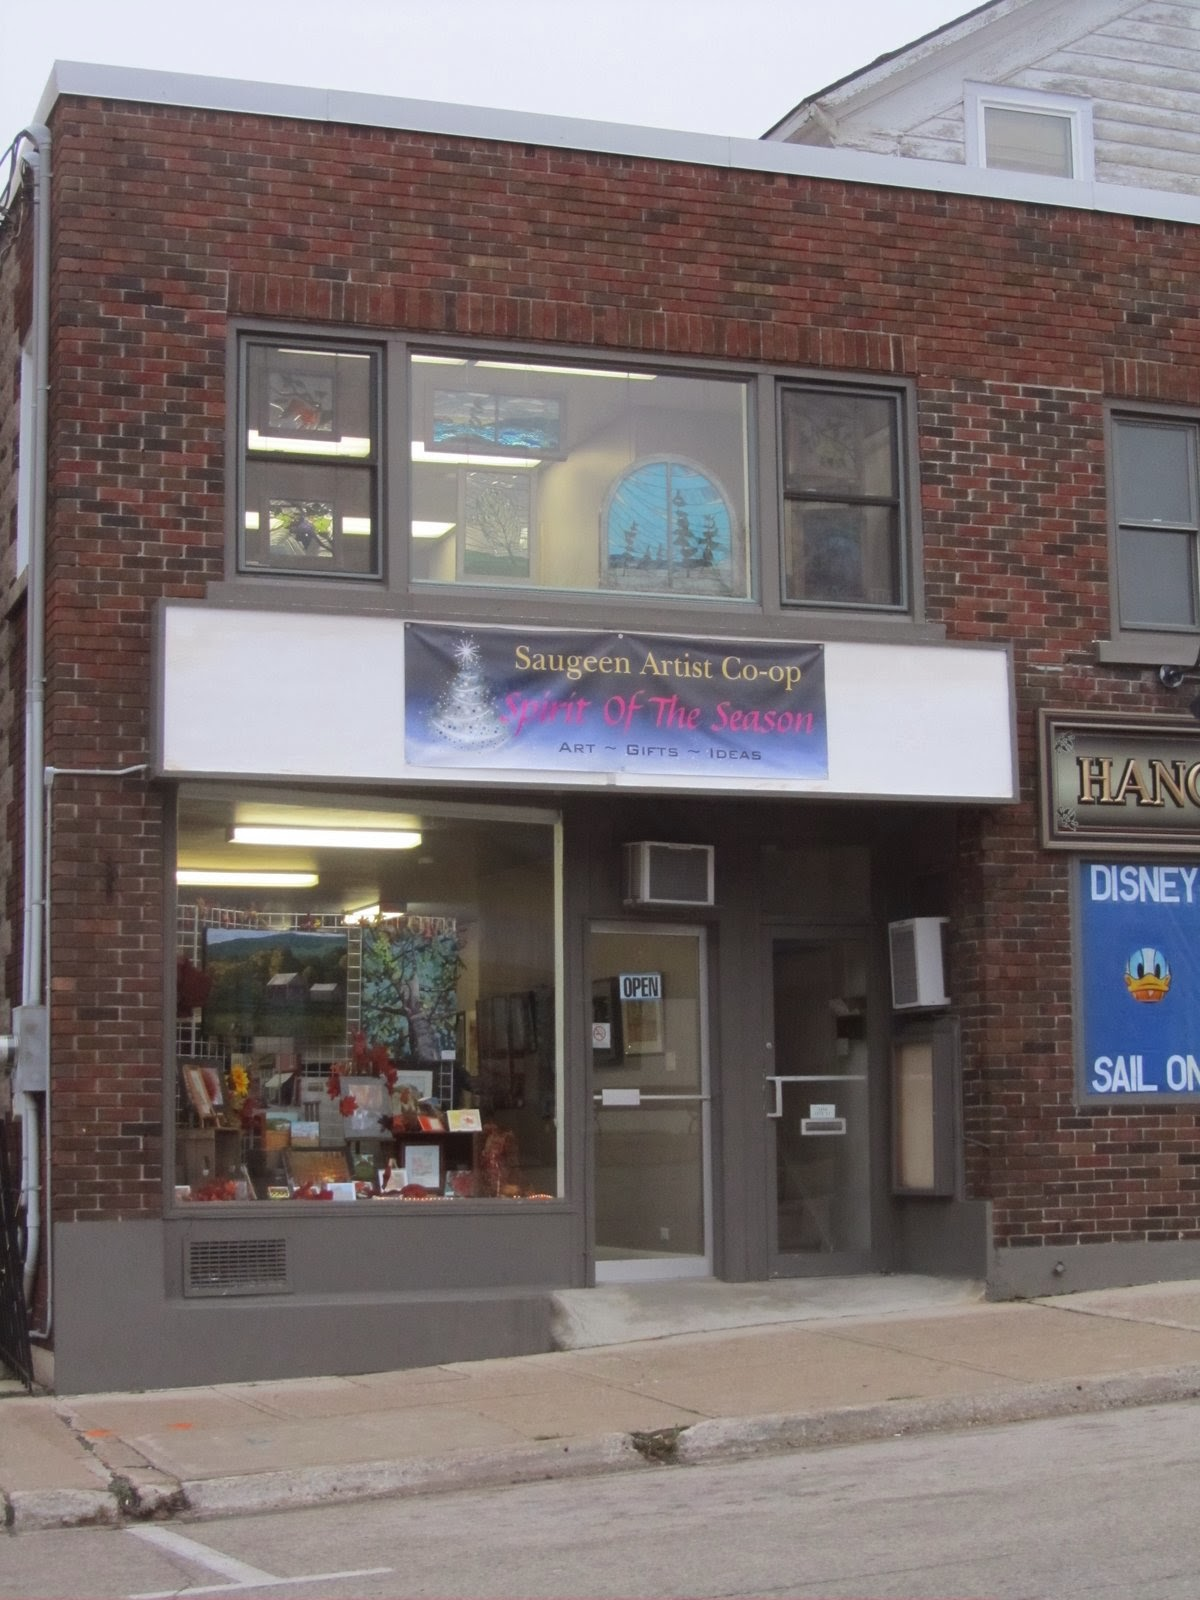 The Hanover Saugeen Artists Store is open..........